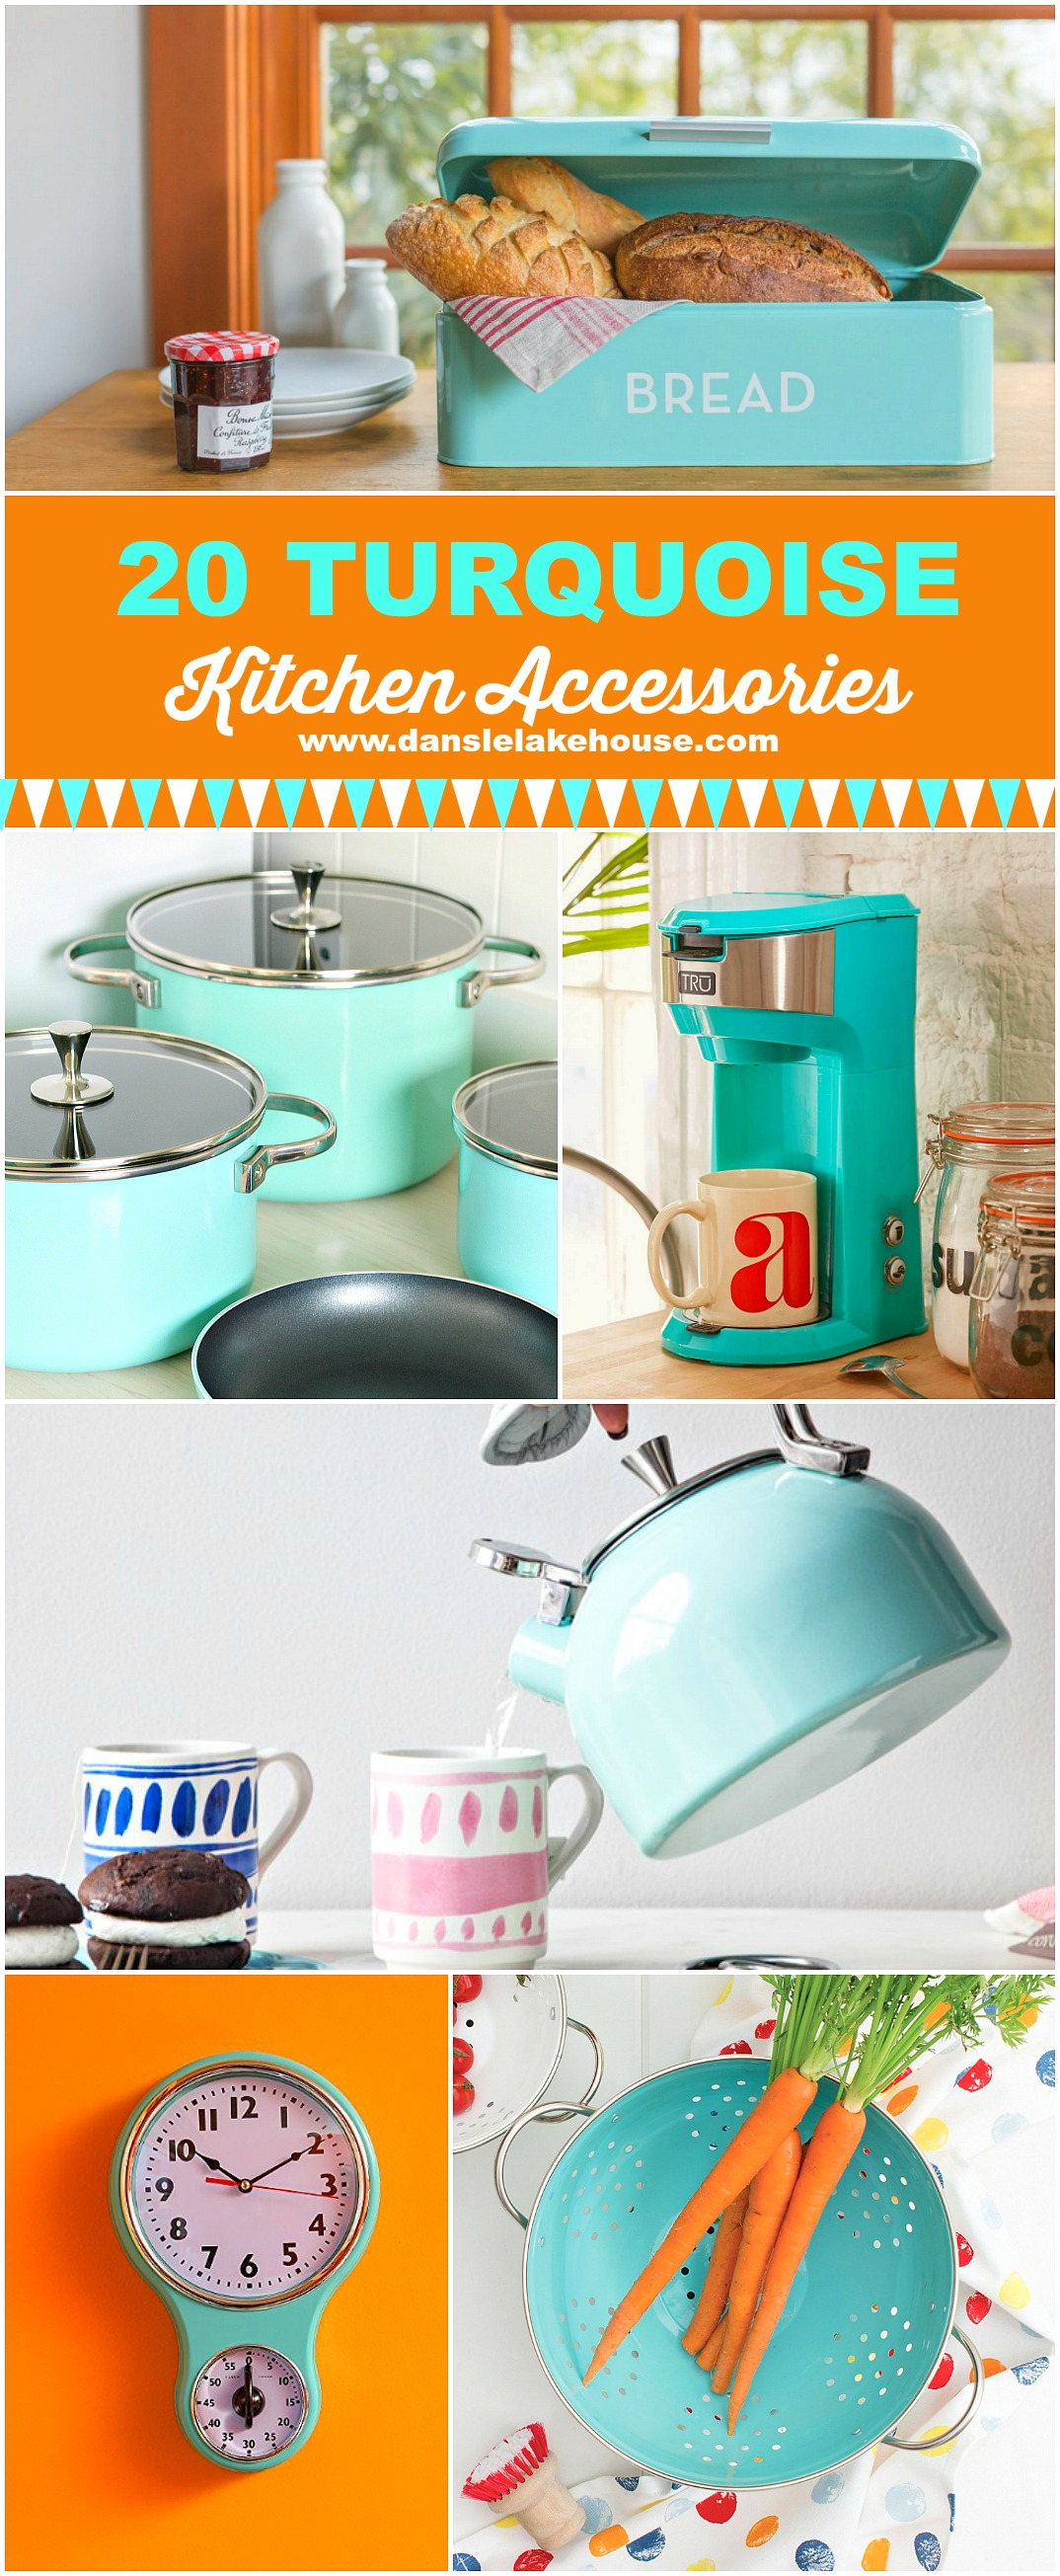 20 Gorgeous Turquoise Kitchen Accessories to Buy Right Now | www.danslelakehouse.com